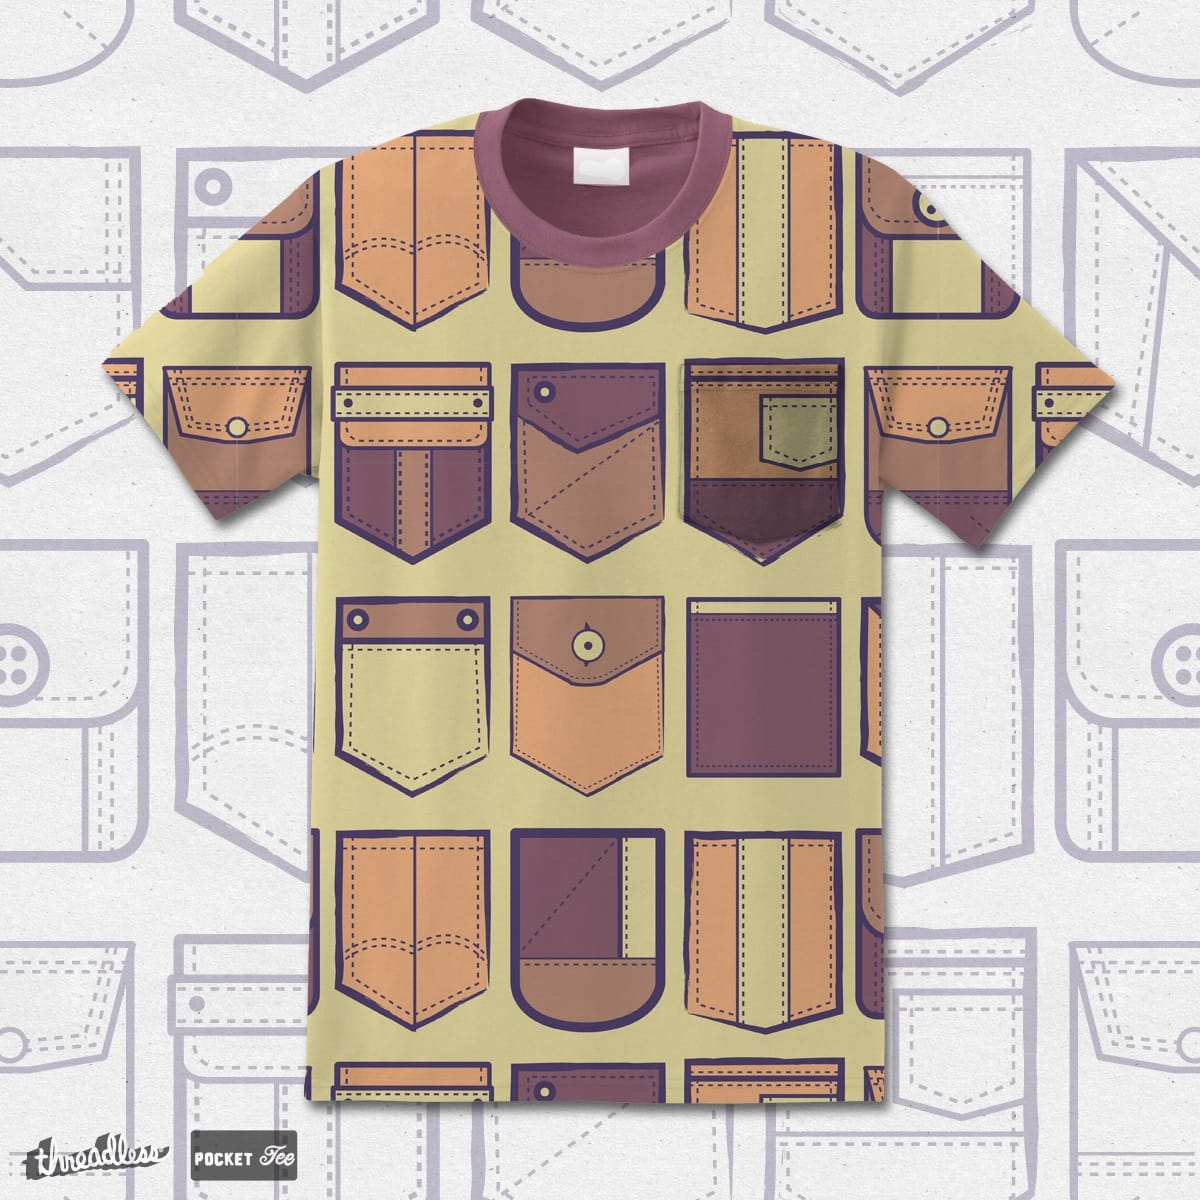 Camouflage Pocket Tee by pethco on Threadless